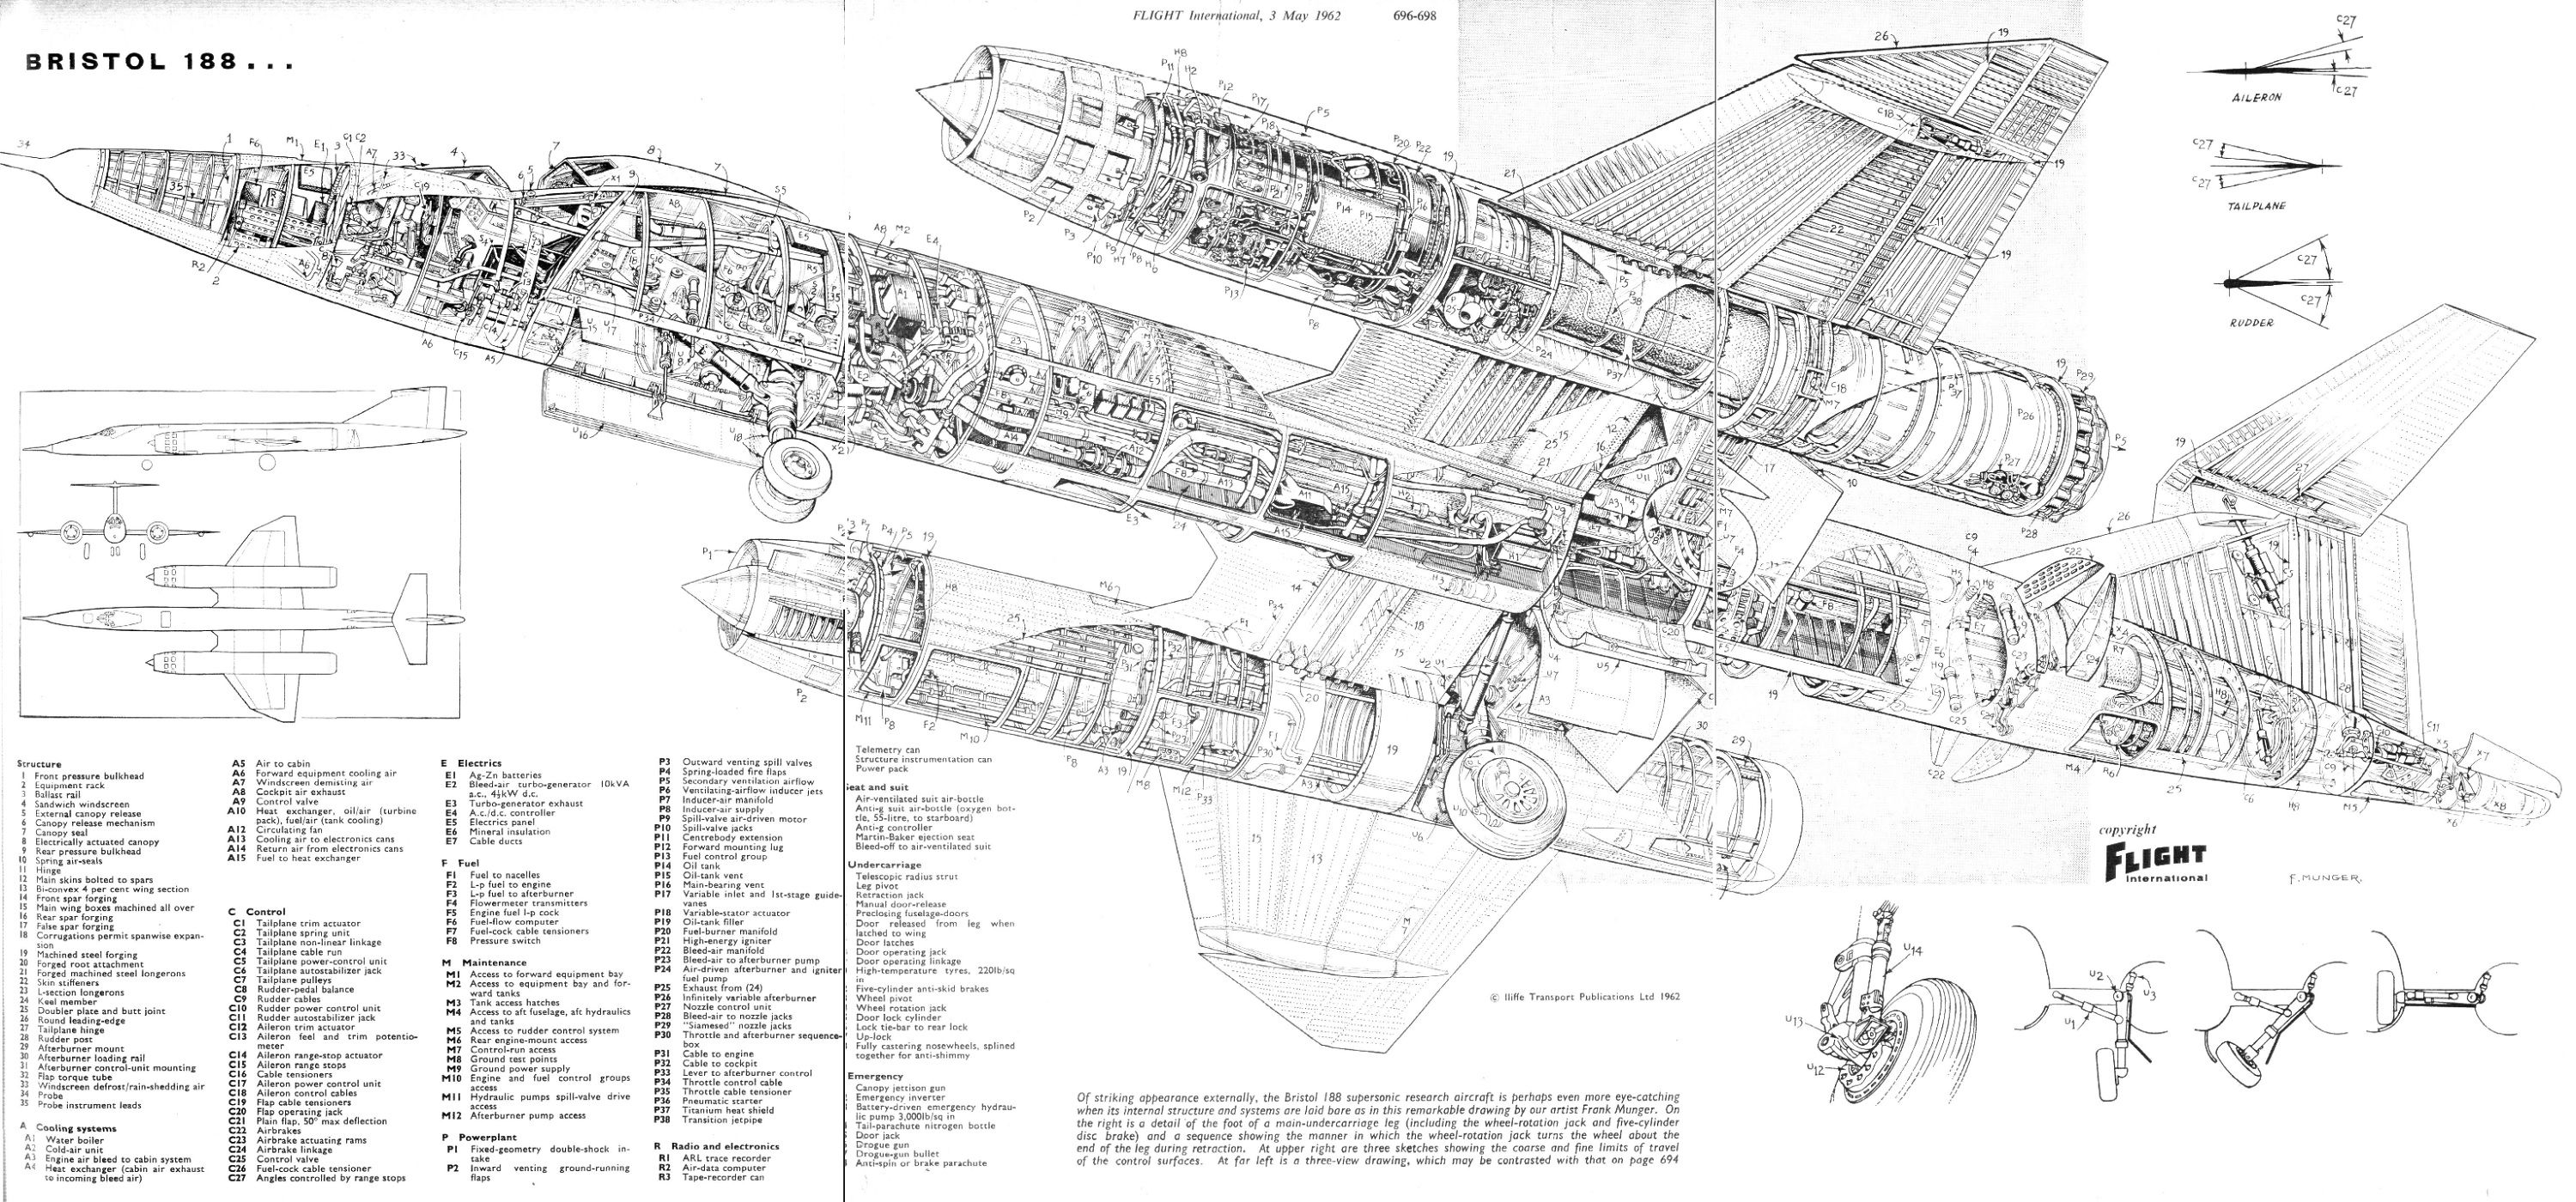 Bristol 188 Supersonic Research Aircraft Cutaway